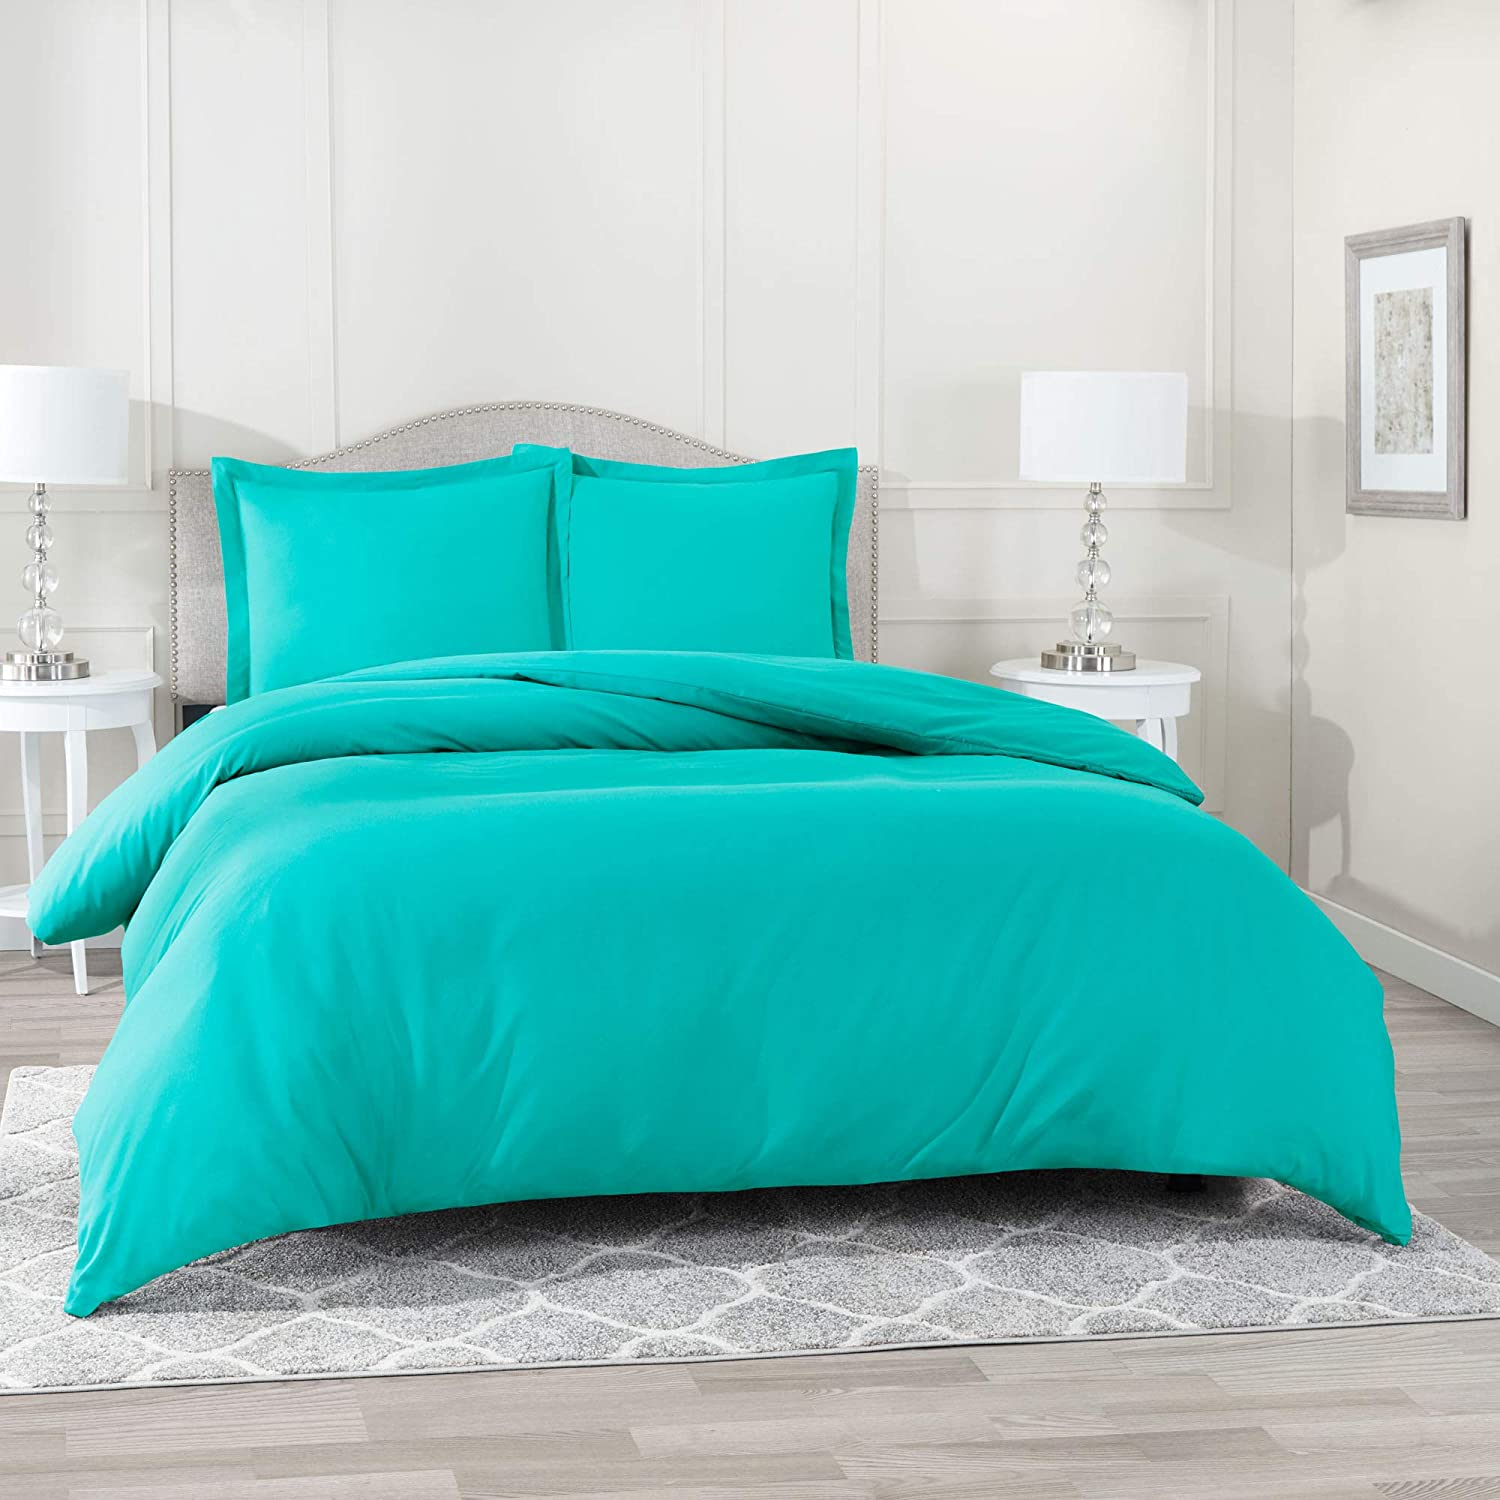 """Nestl Bedding Duvet Cover 3 Piece Set – Ultra Soft Double Brushed Microfiber Hotel Collection – Comforter Cover with Button Closure and 2 Pillow Shams, Teal - Full (Double) 80""""x90"""""""